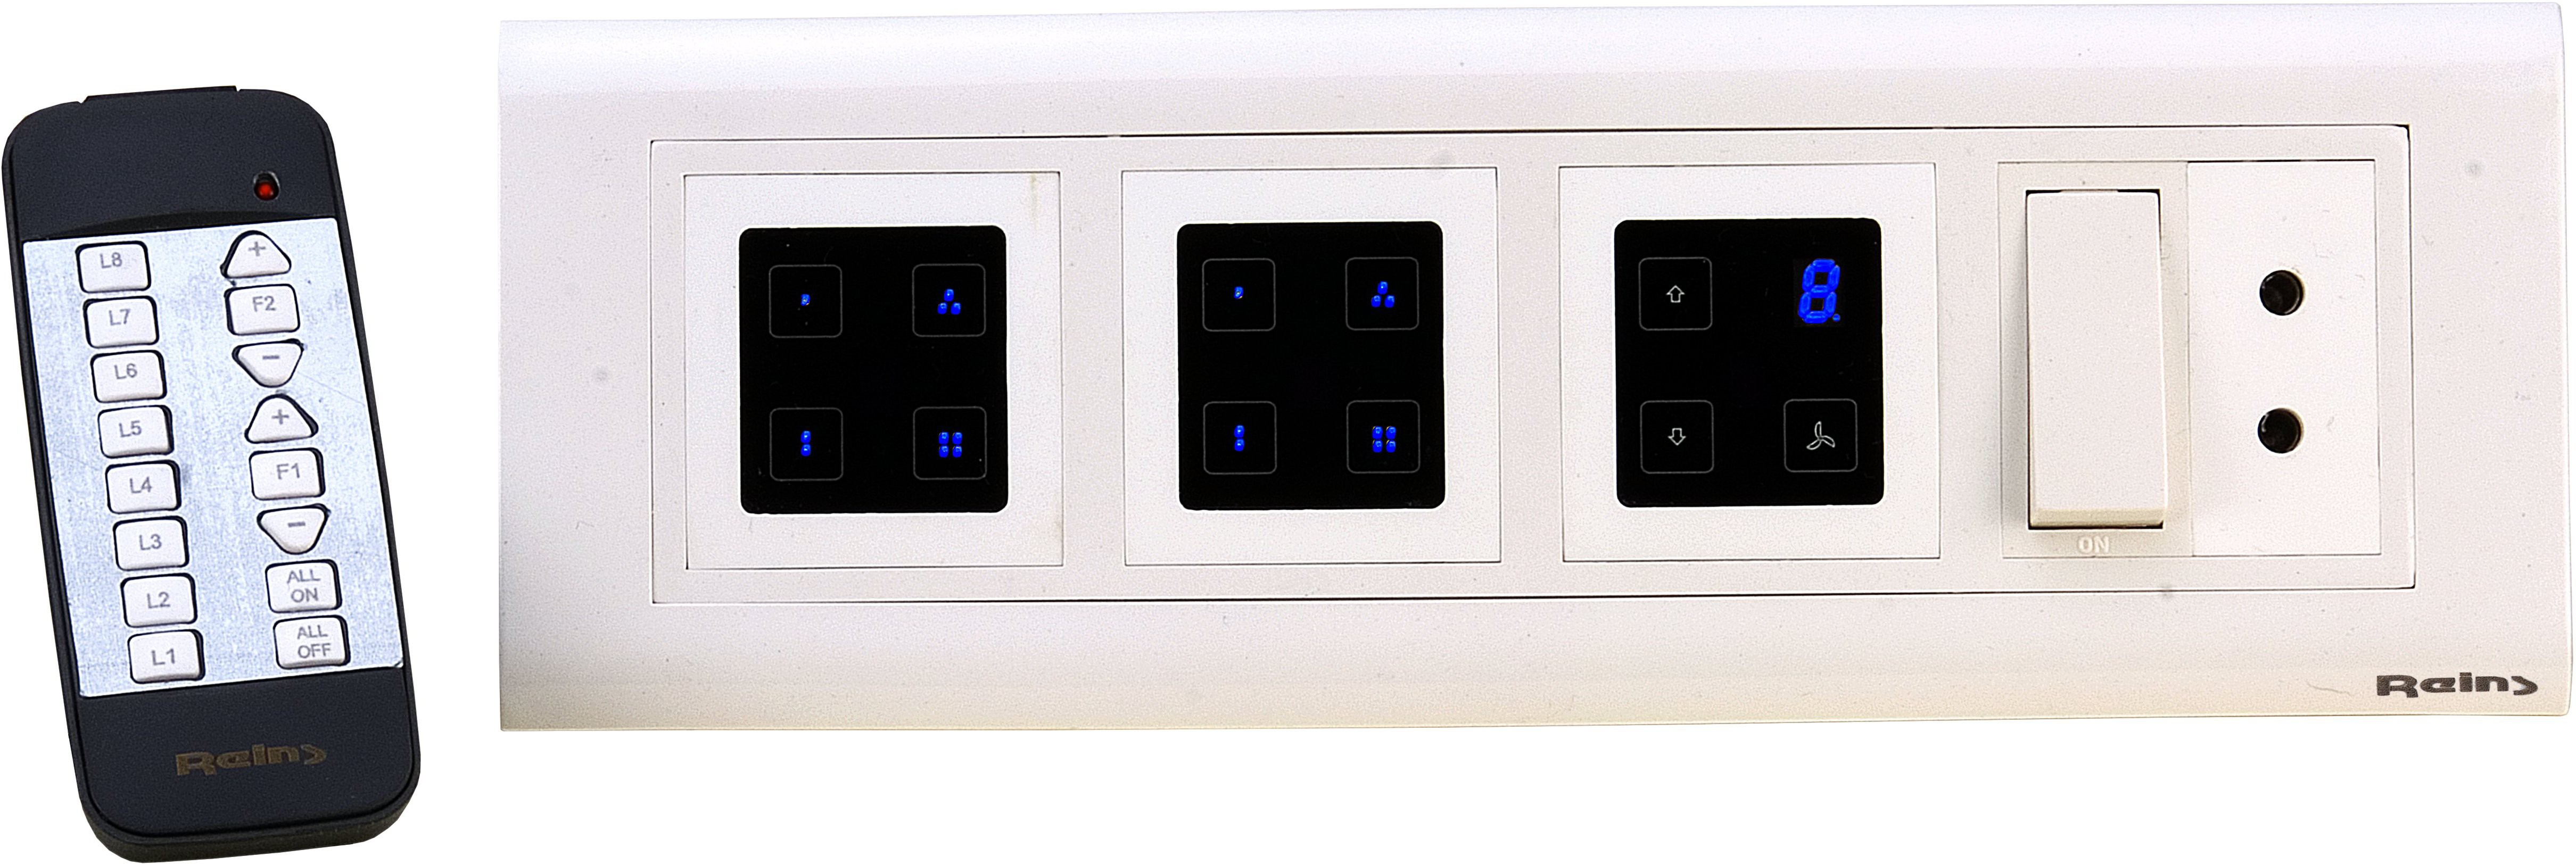 Reins Touch8H 5 One Way Electrical Switch(Pack of 2 Number of Switches - 1) Flipkart